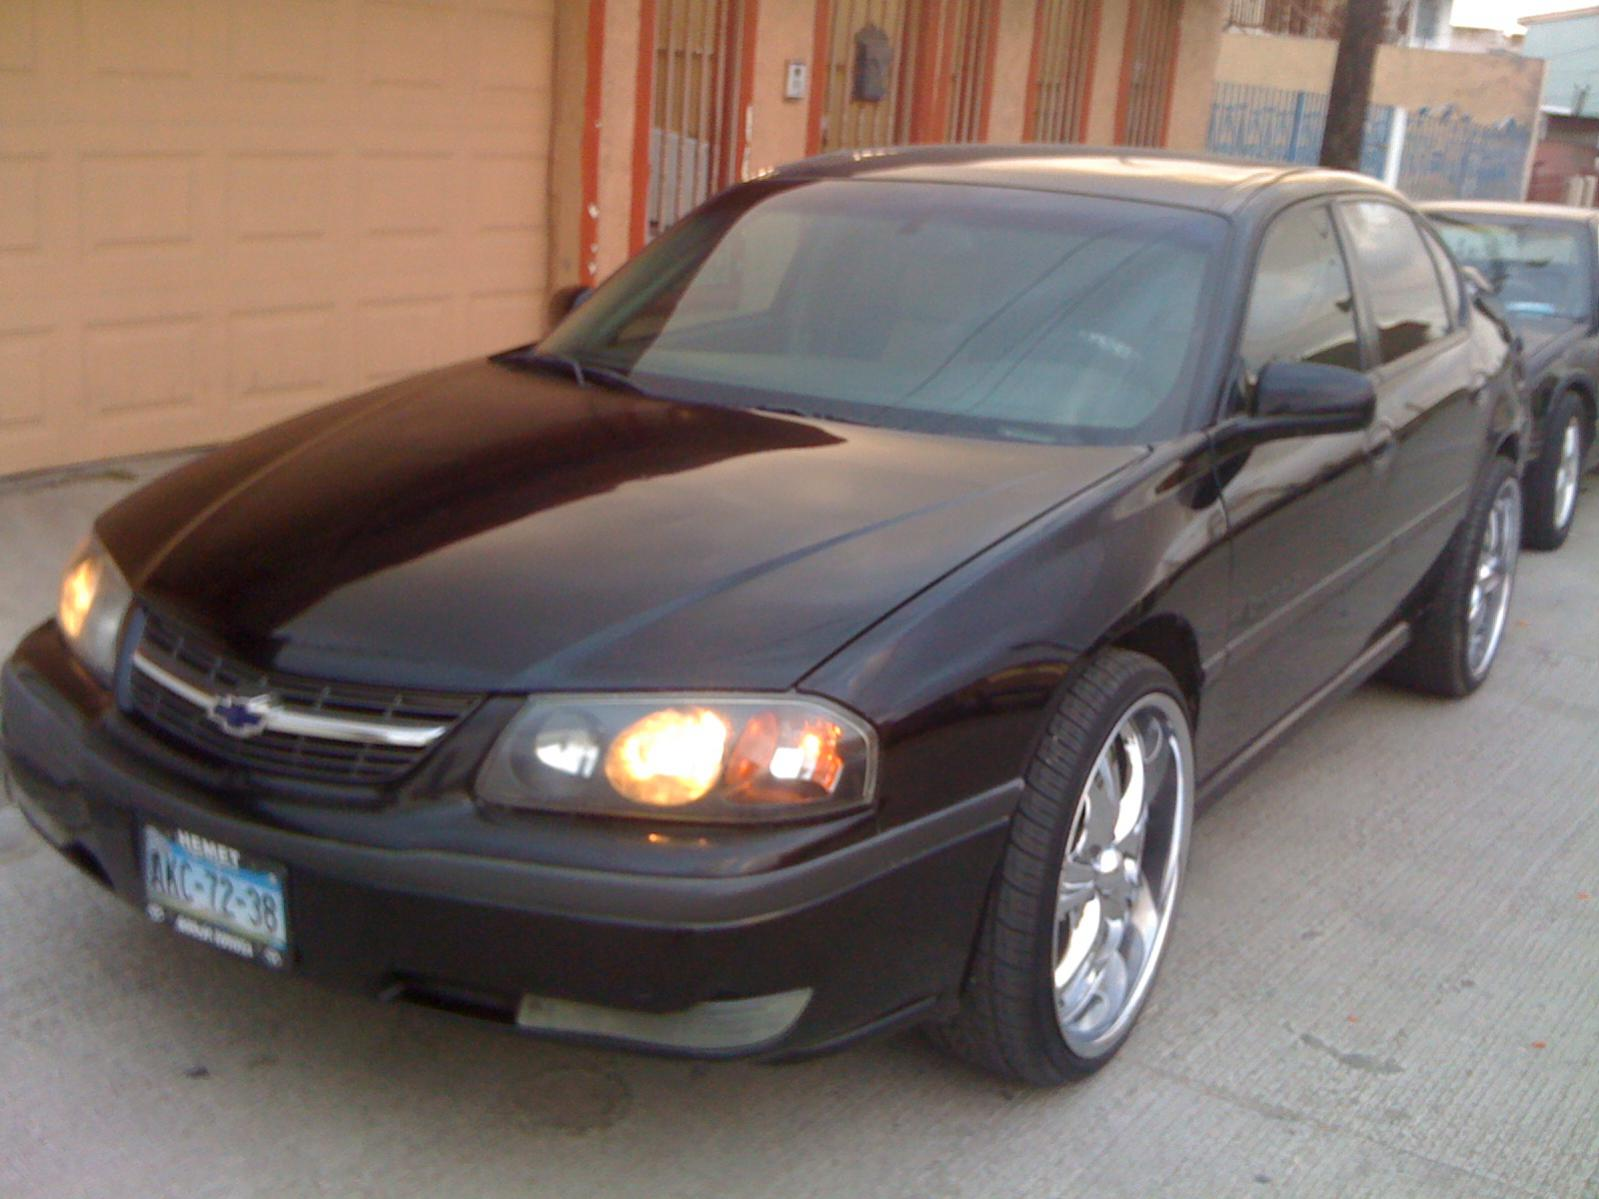 All Chevy chevy 22 inch rims impala 2004 whit 22 rims and in dash toch - Chevy Impala Forums